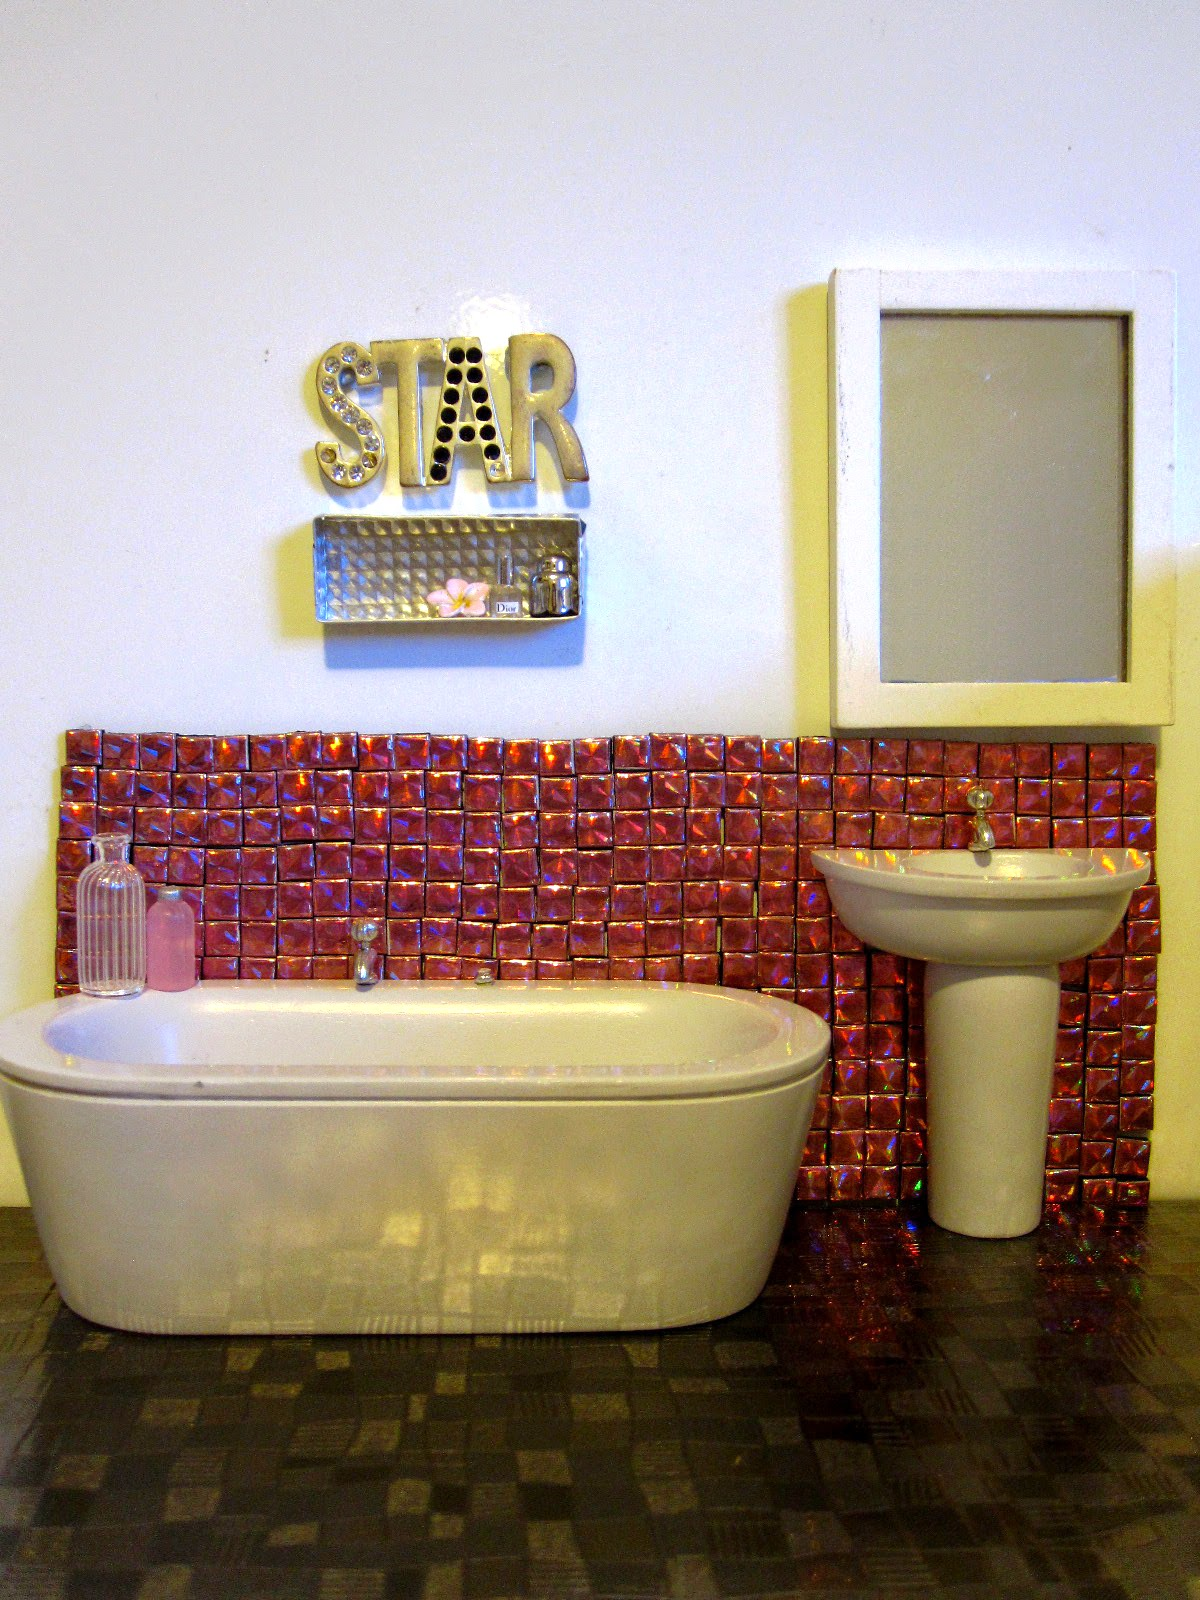 Modern dolls house miniature bathroom with pink sparkly tiles on the wall and grey shiny 'stone' floor.